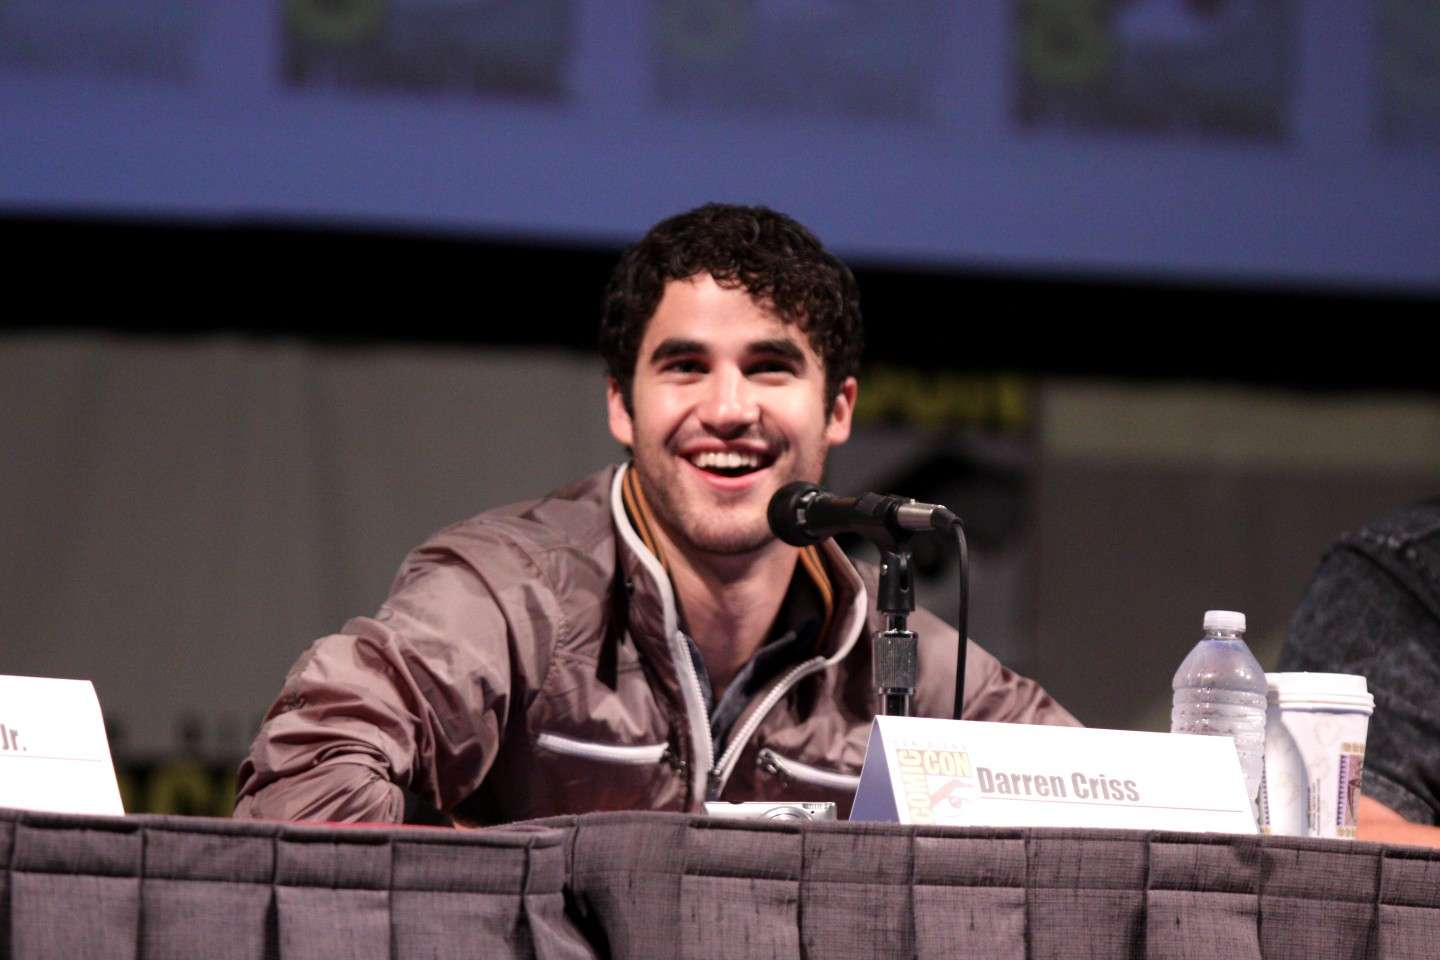 Darren Criss al Comicon